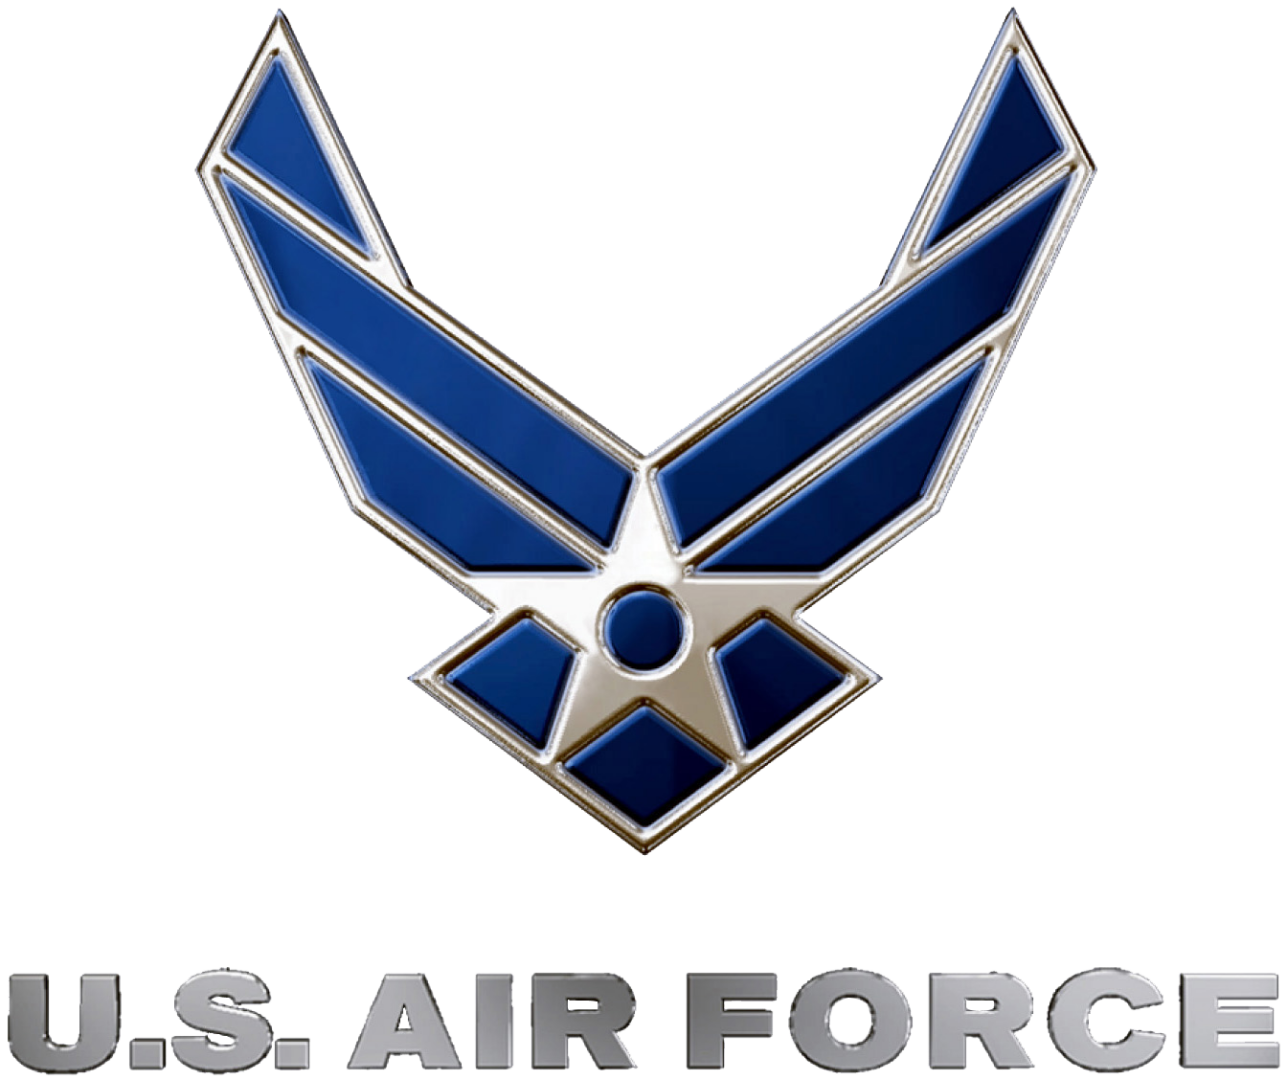 https://spokanecorporatehousing.com/wp-content/uploads/2020/06/USAF_logo.png